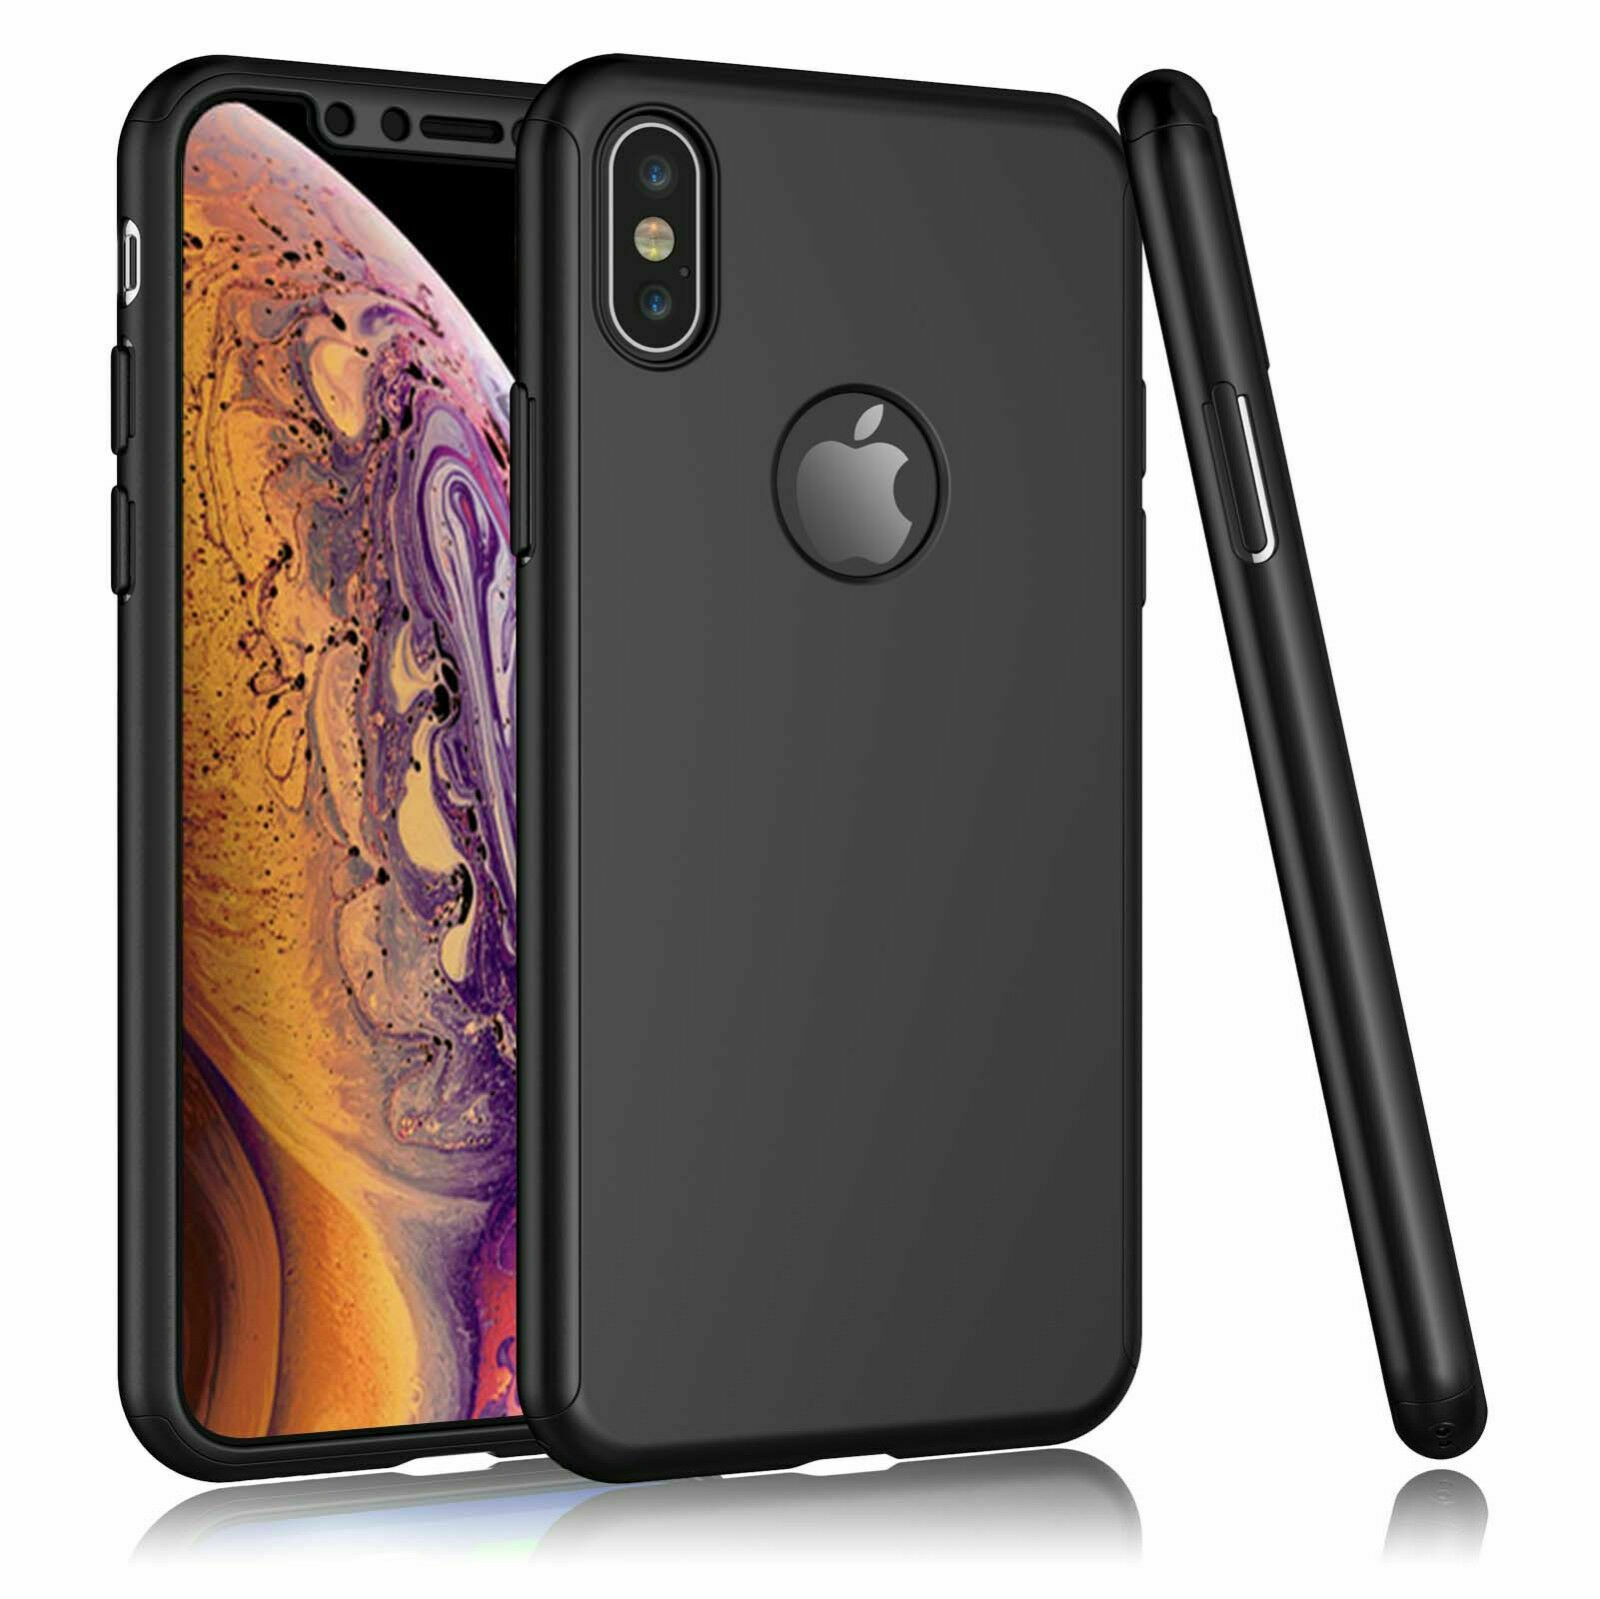 For-iPhone-8-7-6-Plus-X-Xs-Max-XR-Ultra-Thin-Slim-Hard-Case-Cover-Tempered-Glass thumbnail 13